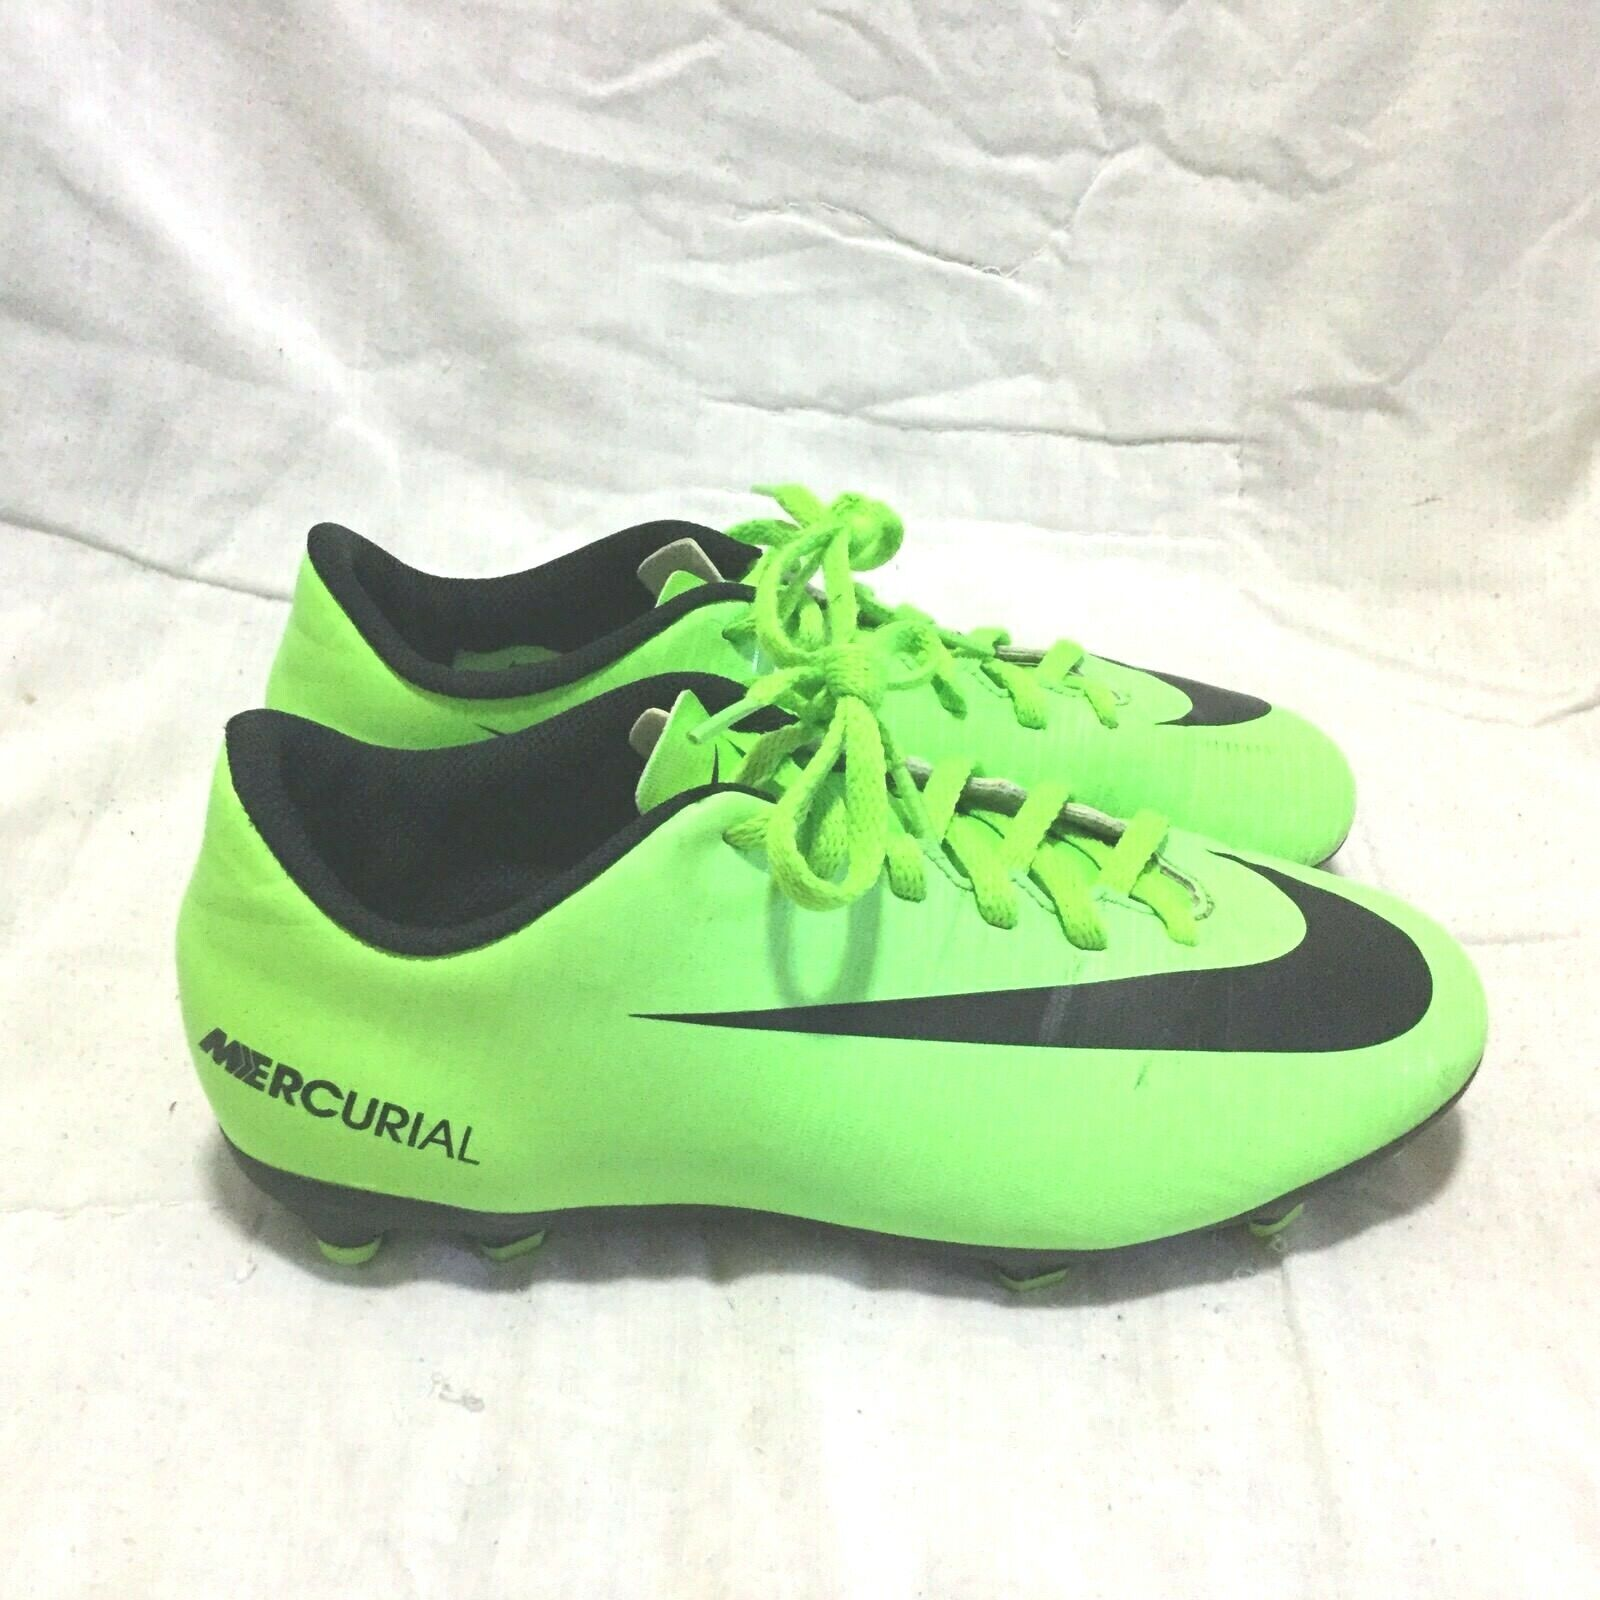 NIKE MERCURIAL SOCCER CLEATS / MULTI COLOR ( SIZE 5.5Y ) YOUTH